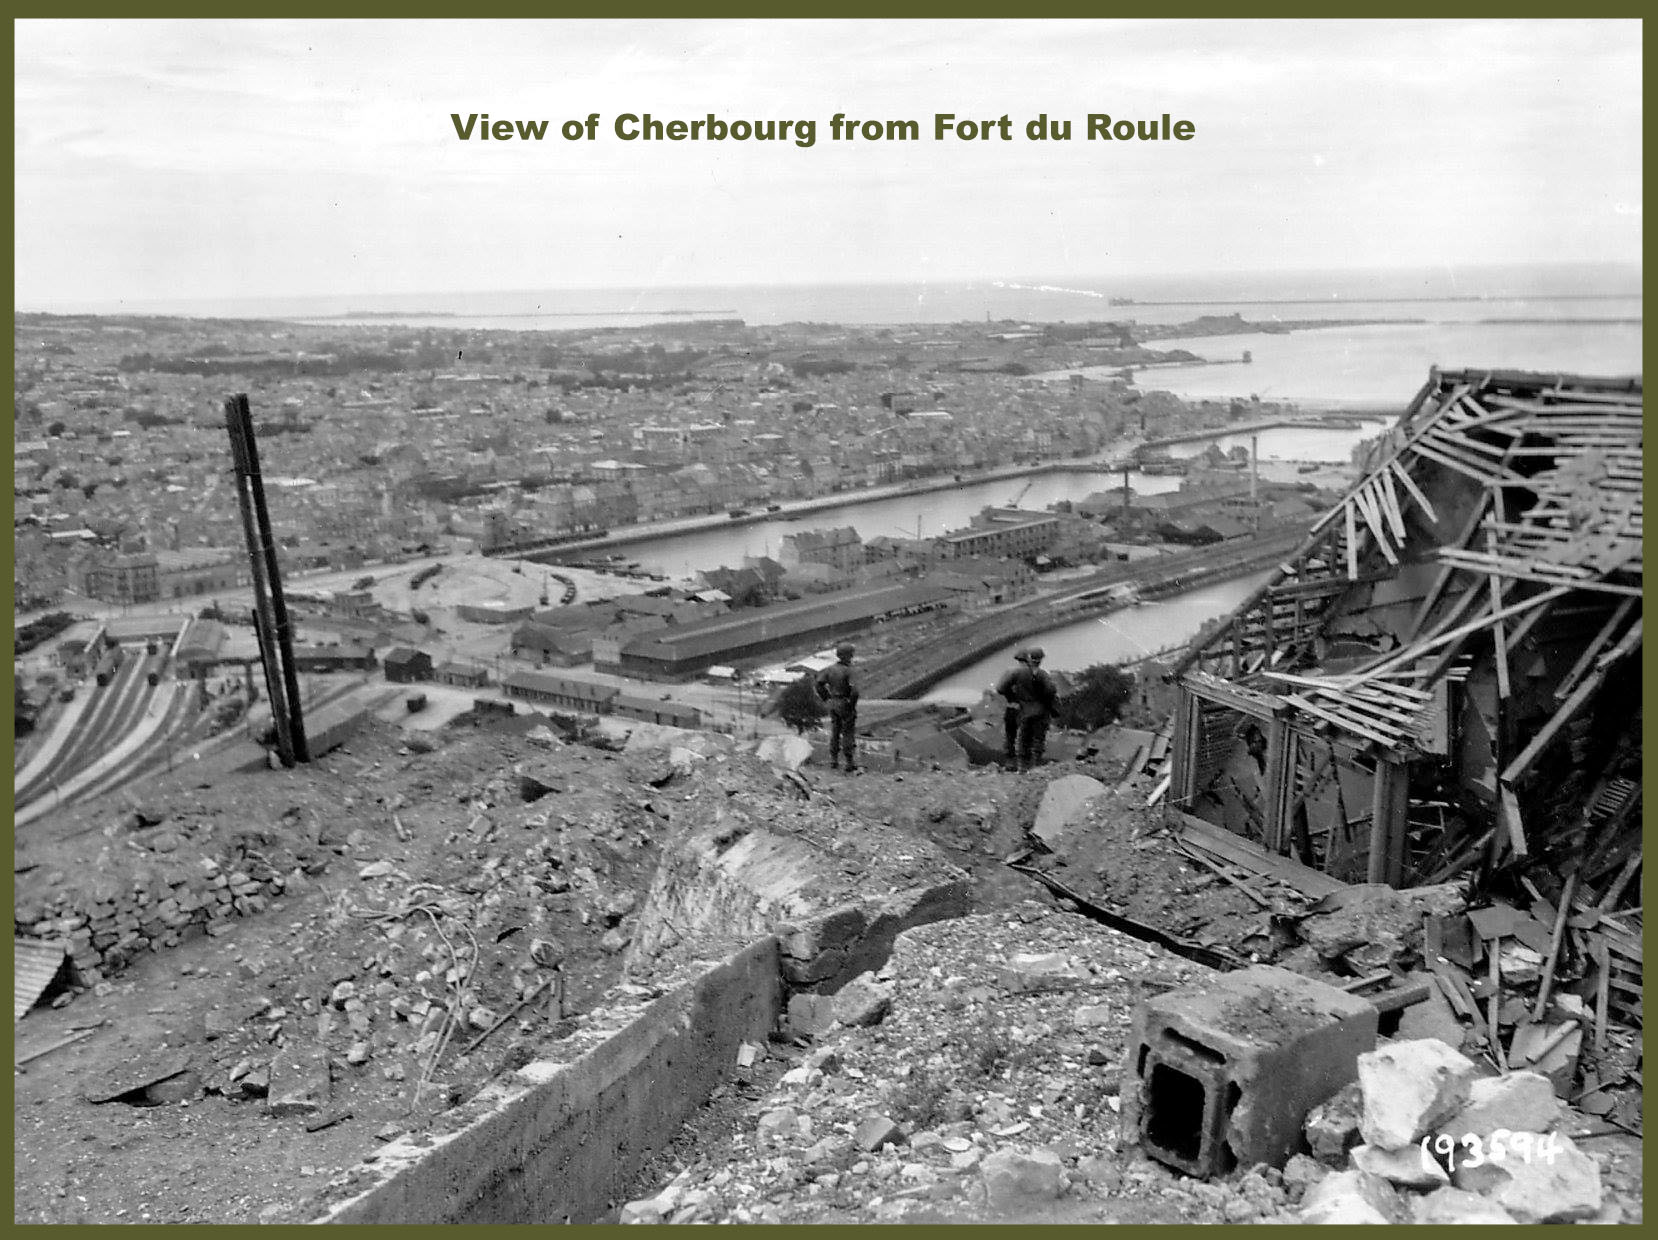 Fort du Roule view of Cherbourg copy